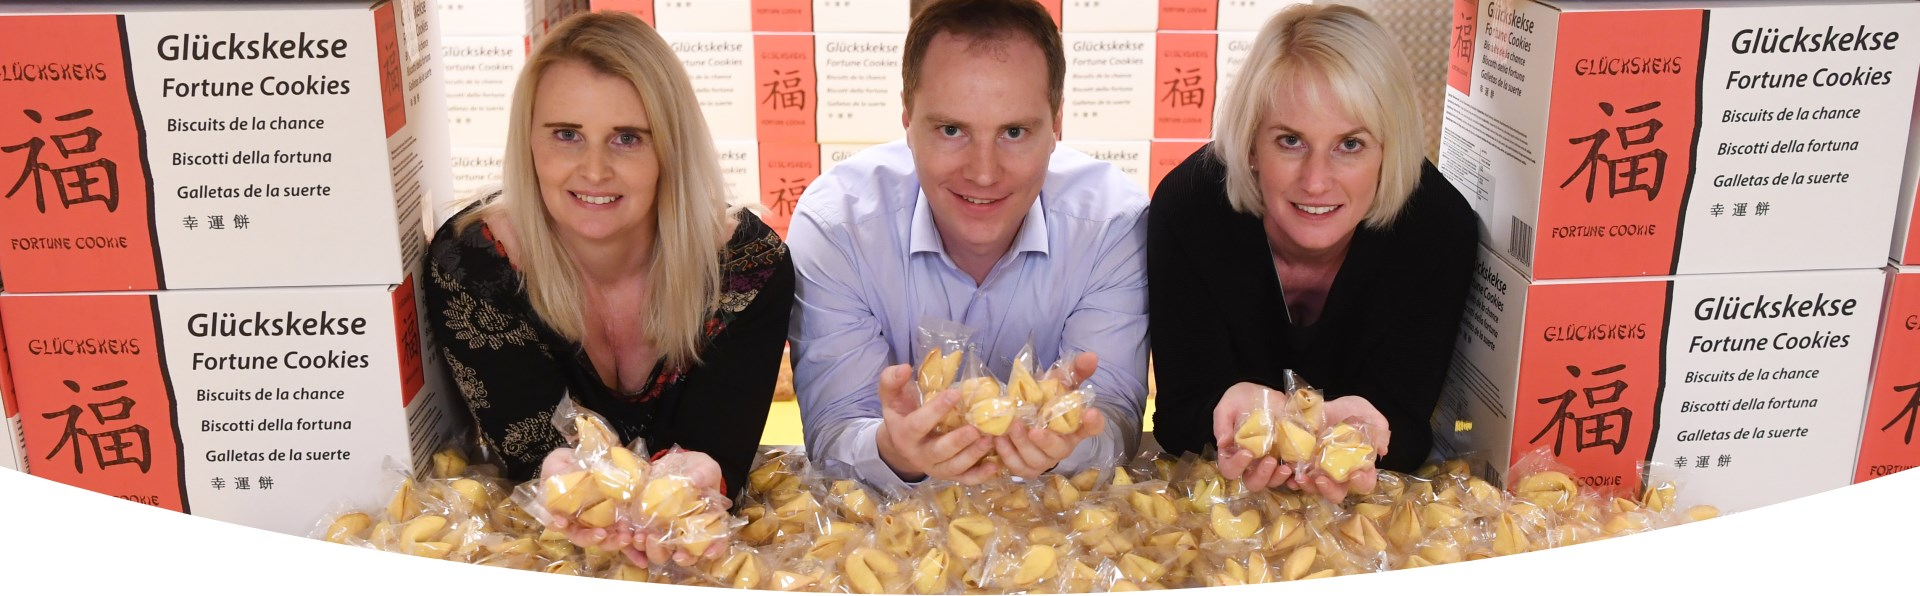 Alexandra, Christoph and Viktoria Brauch surrounded by fortune cookies.